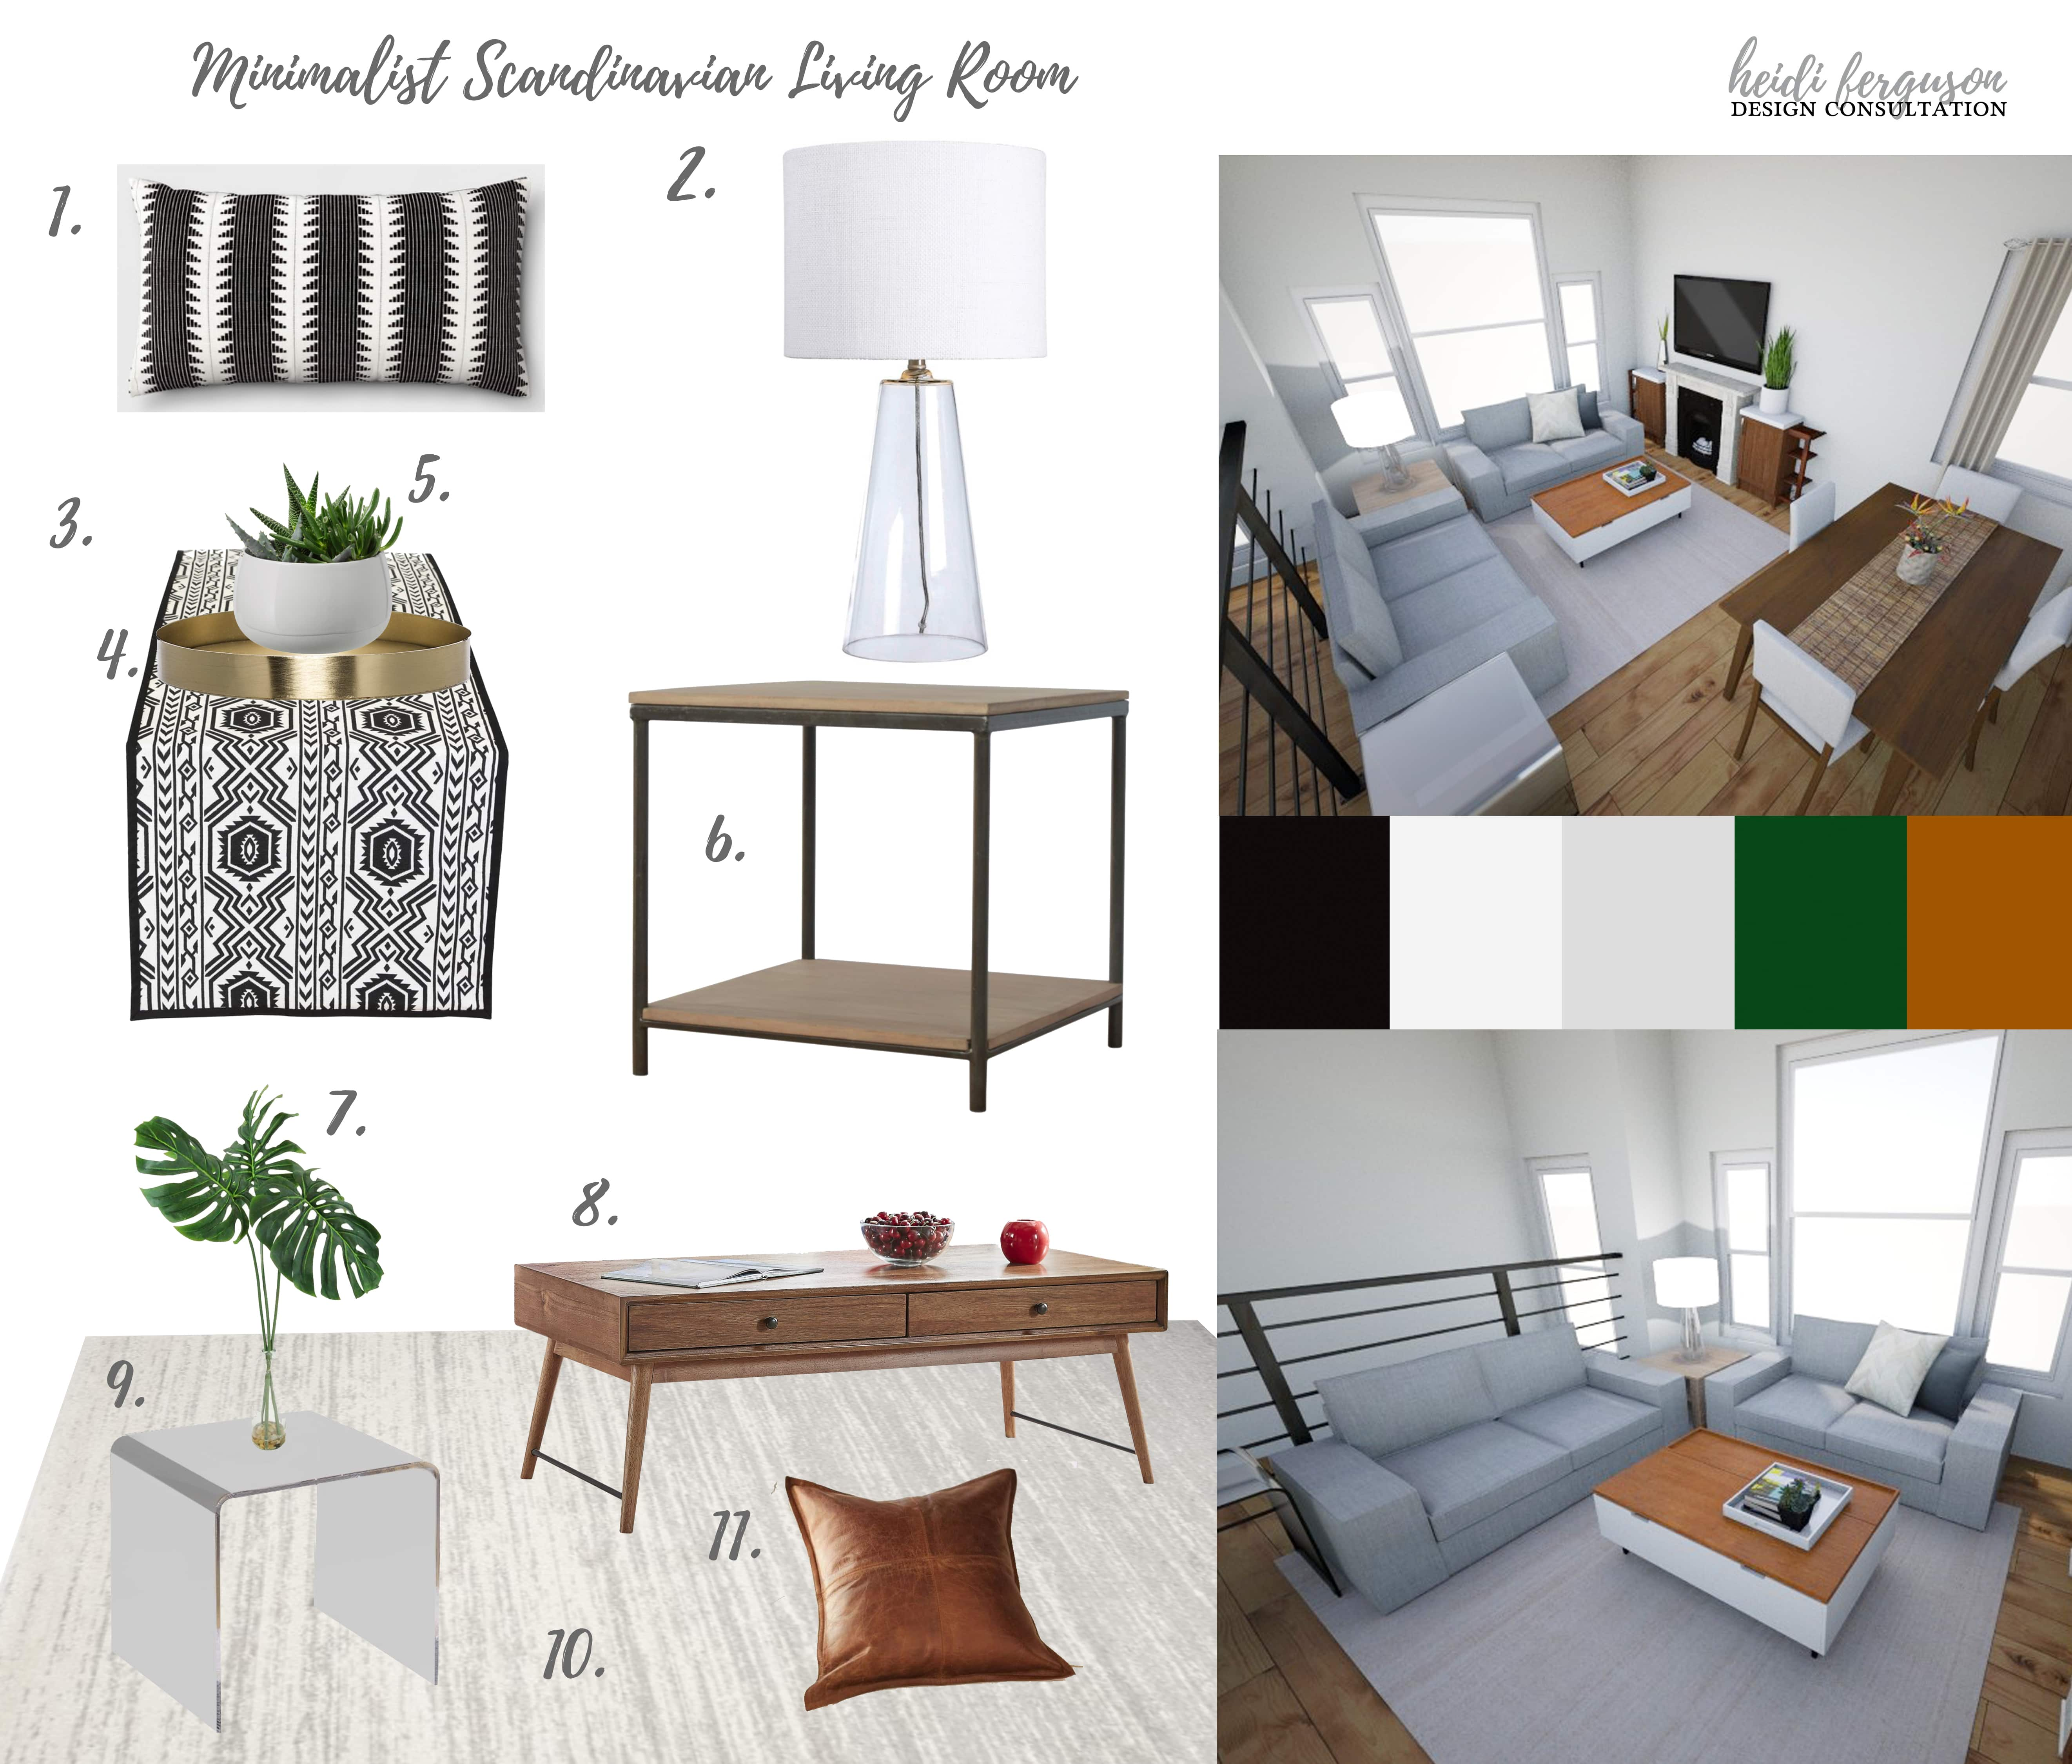 Interior Design Consultation Open Again! - Honeybear Lane